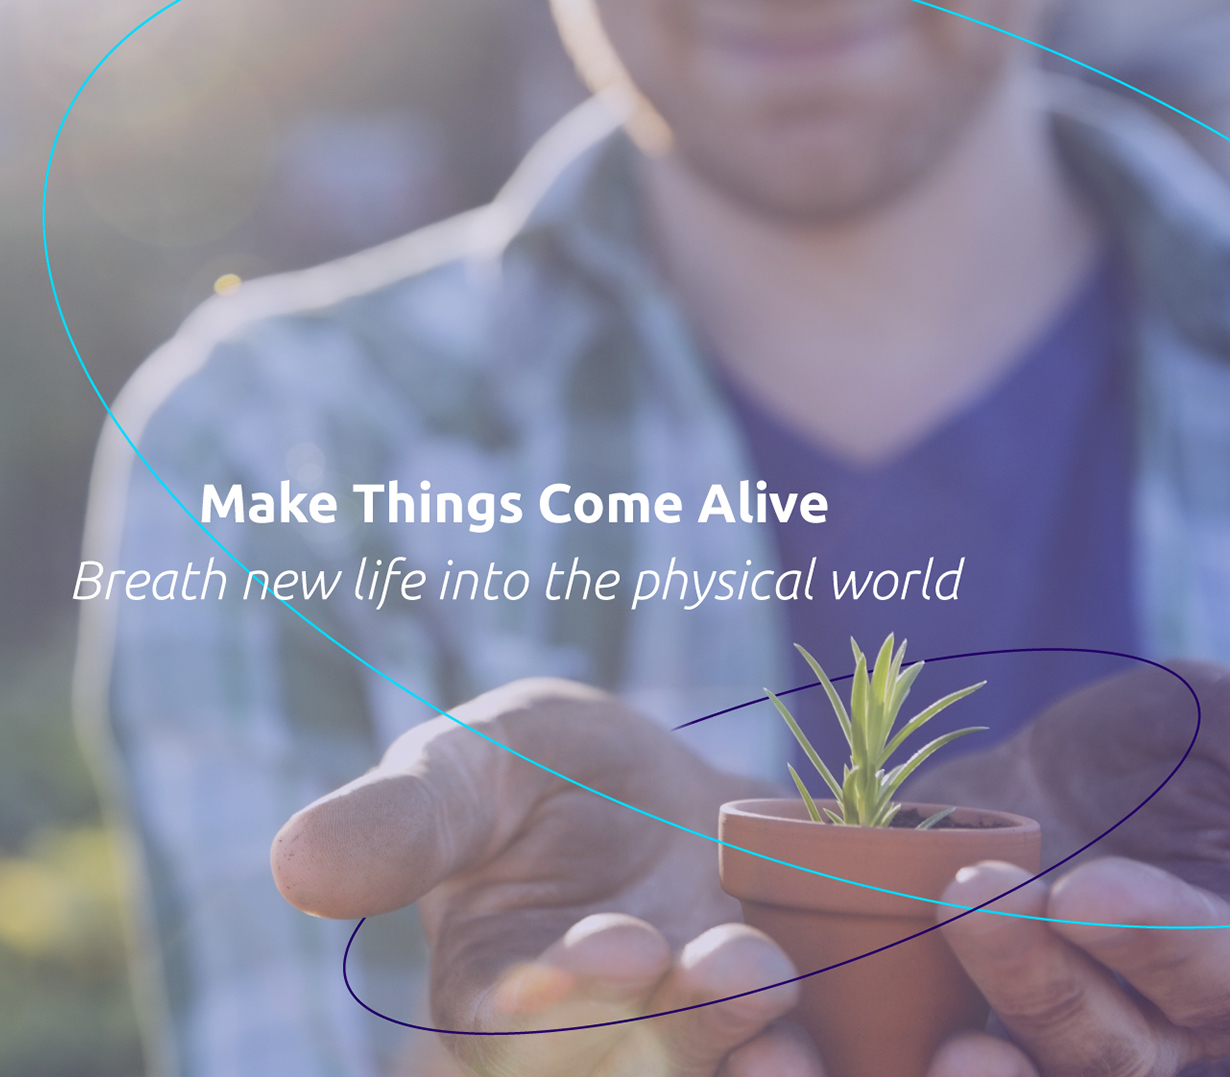 Make-Things-Come-Alive-1